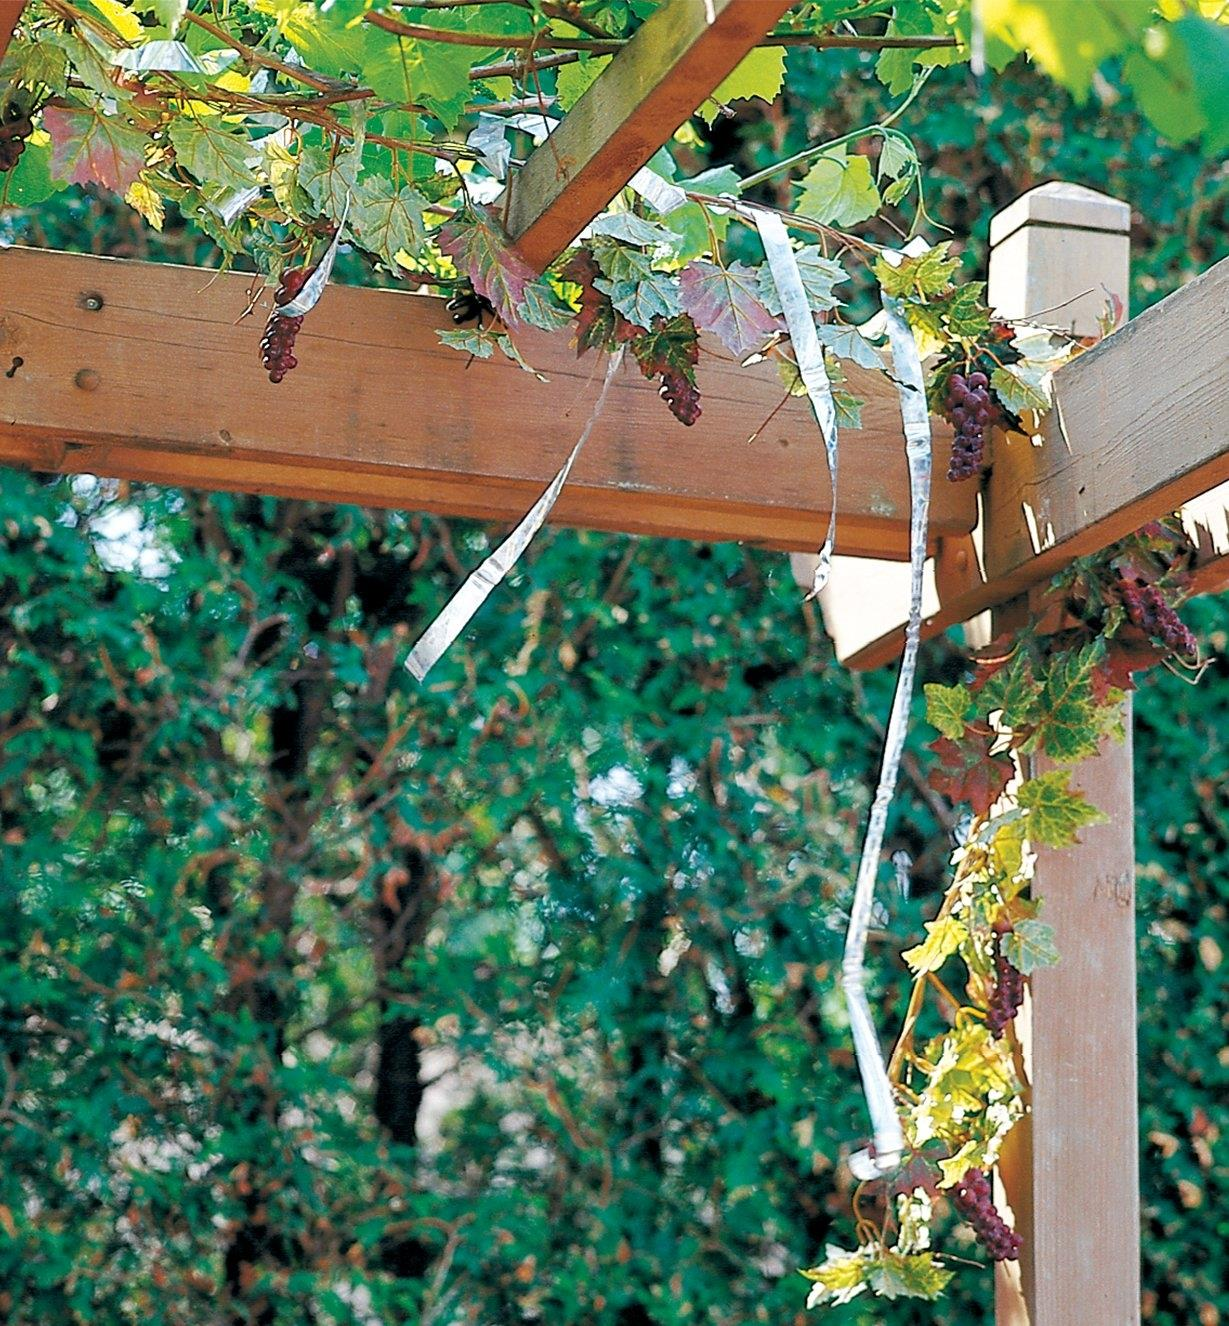 Holographic Scare Tape hanging over grape vines on a trellis